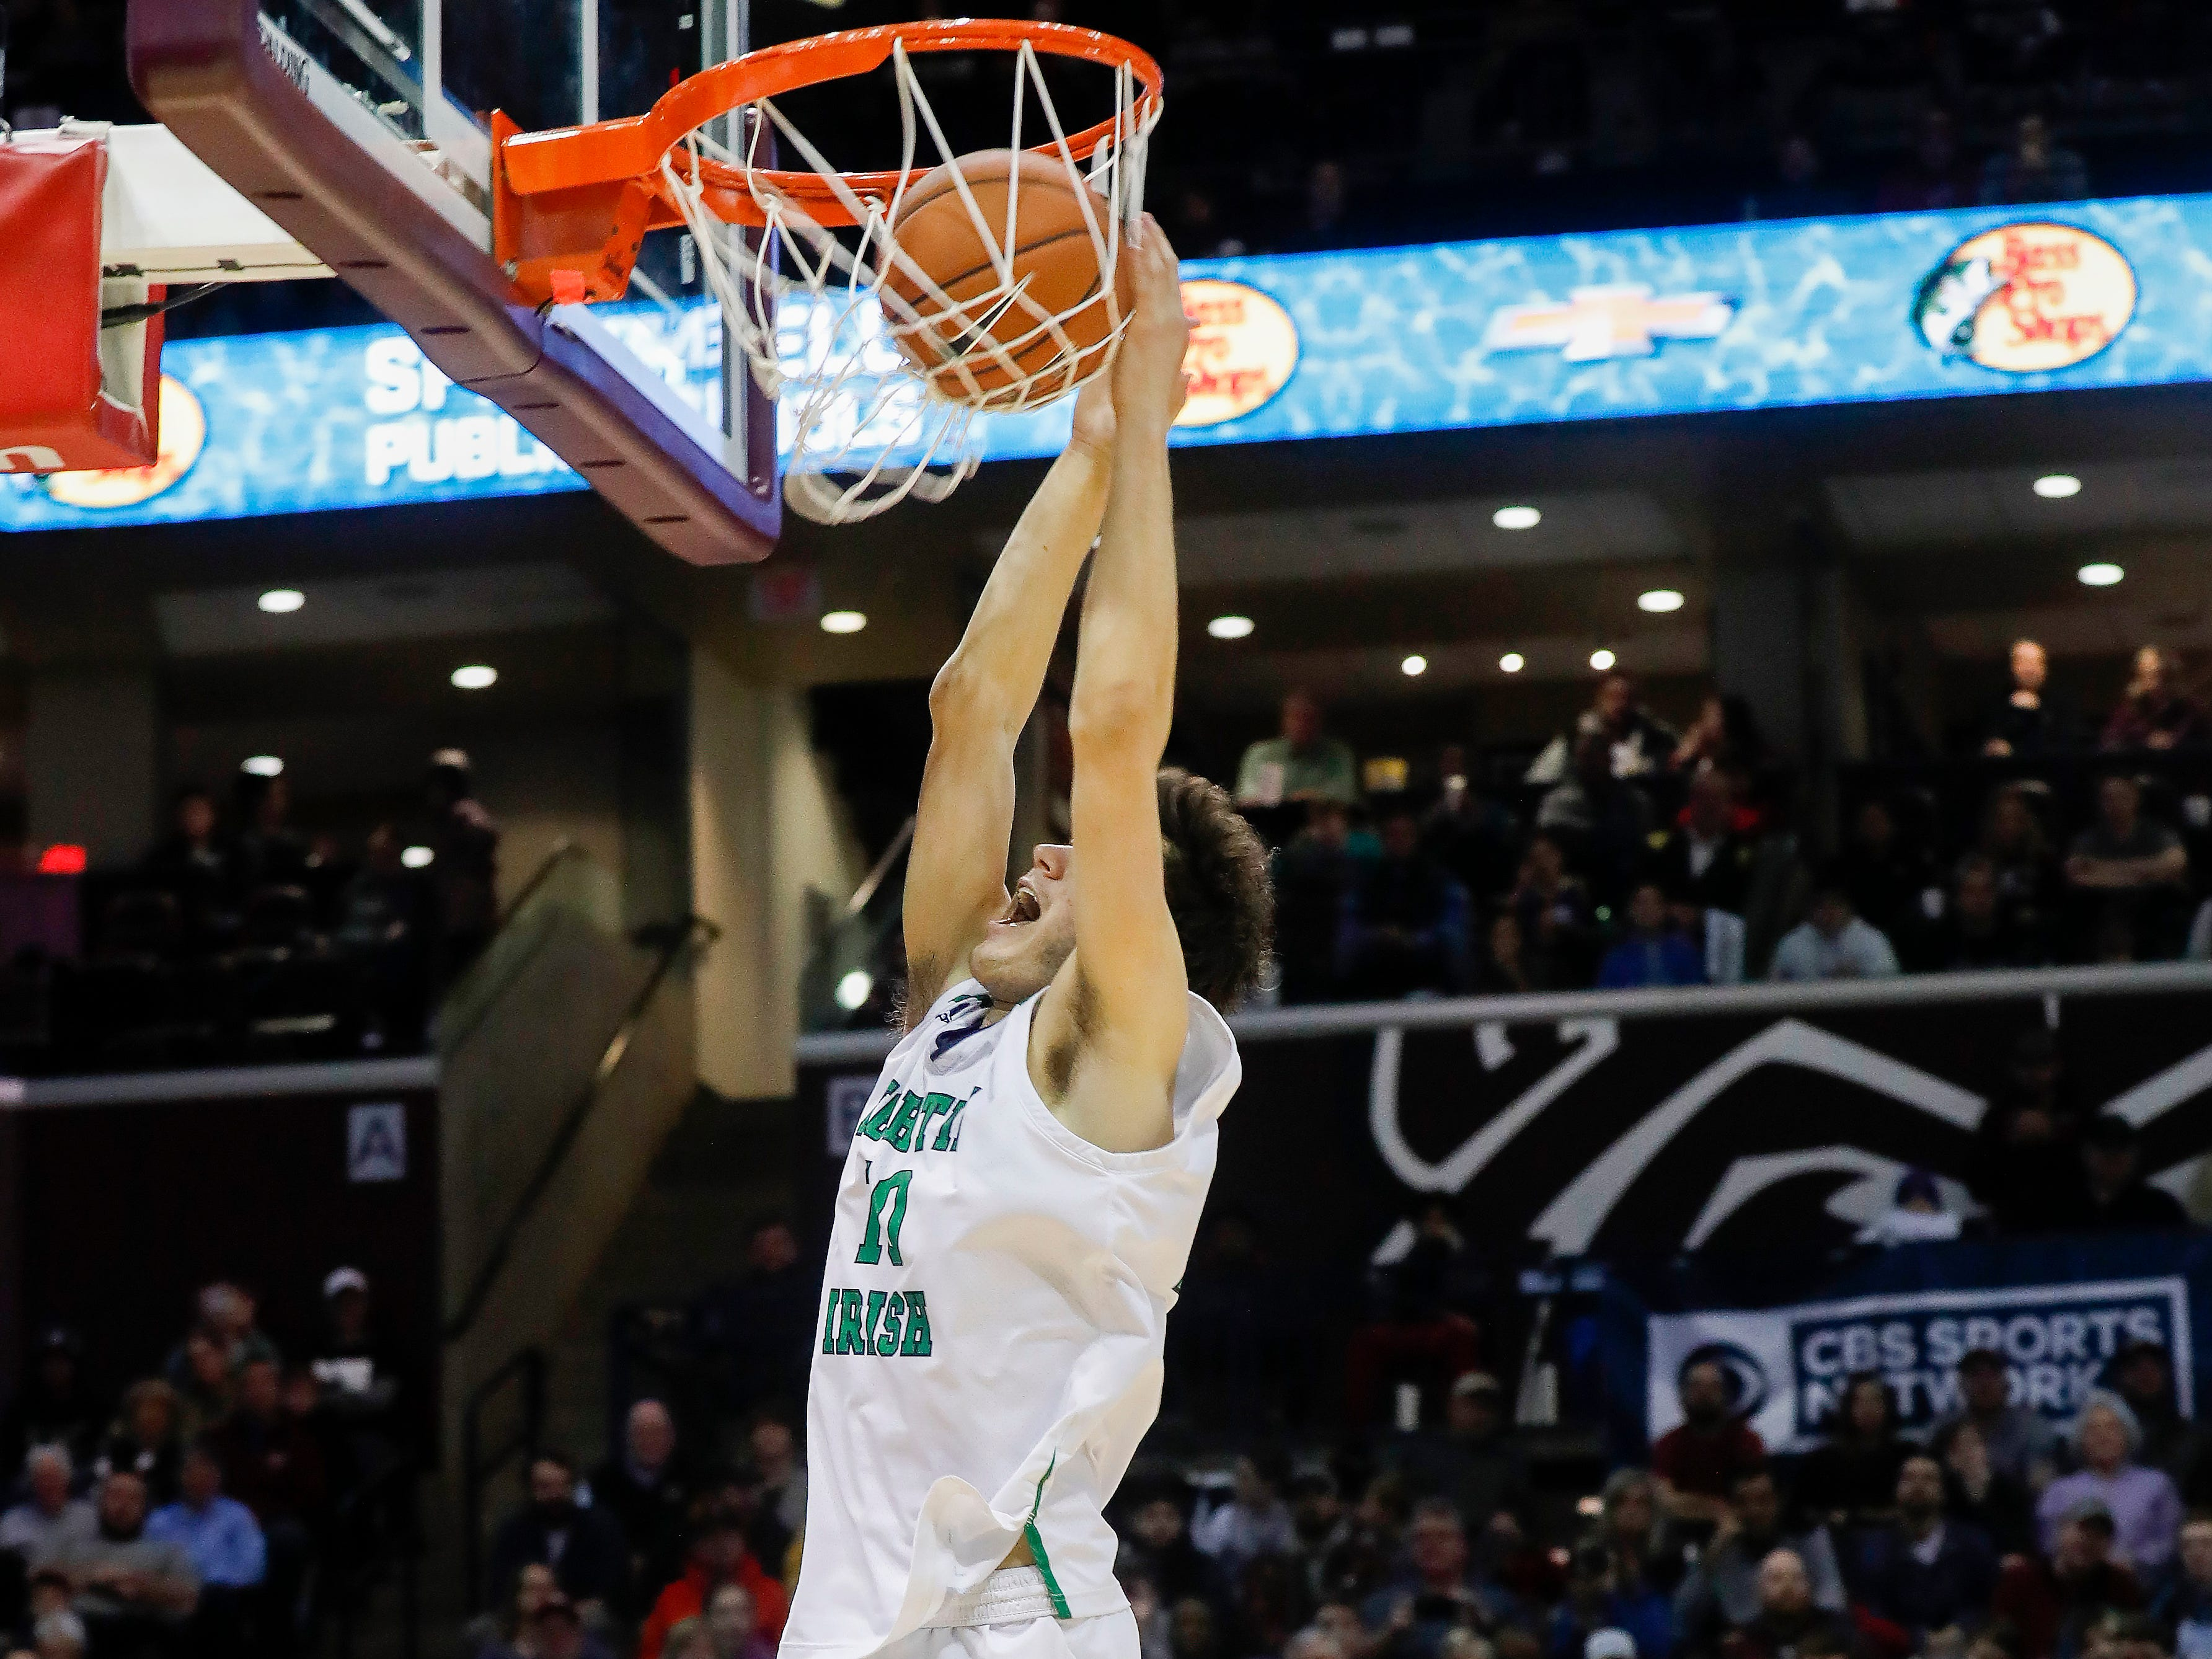 Mike Manzardo, of Springfield Catholic, competes in the slam dunk contest at the Bass Pro Shops Tournament of Champions at JQH Arena on Saturday, Jan. 19, 2019.